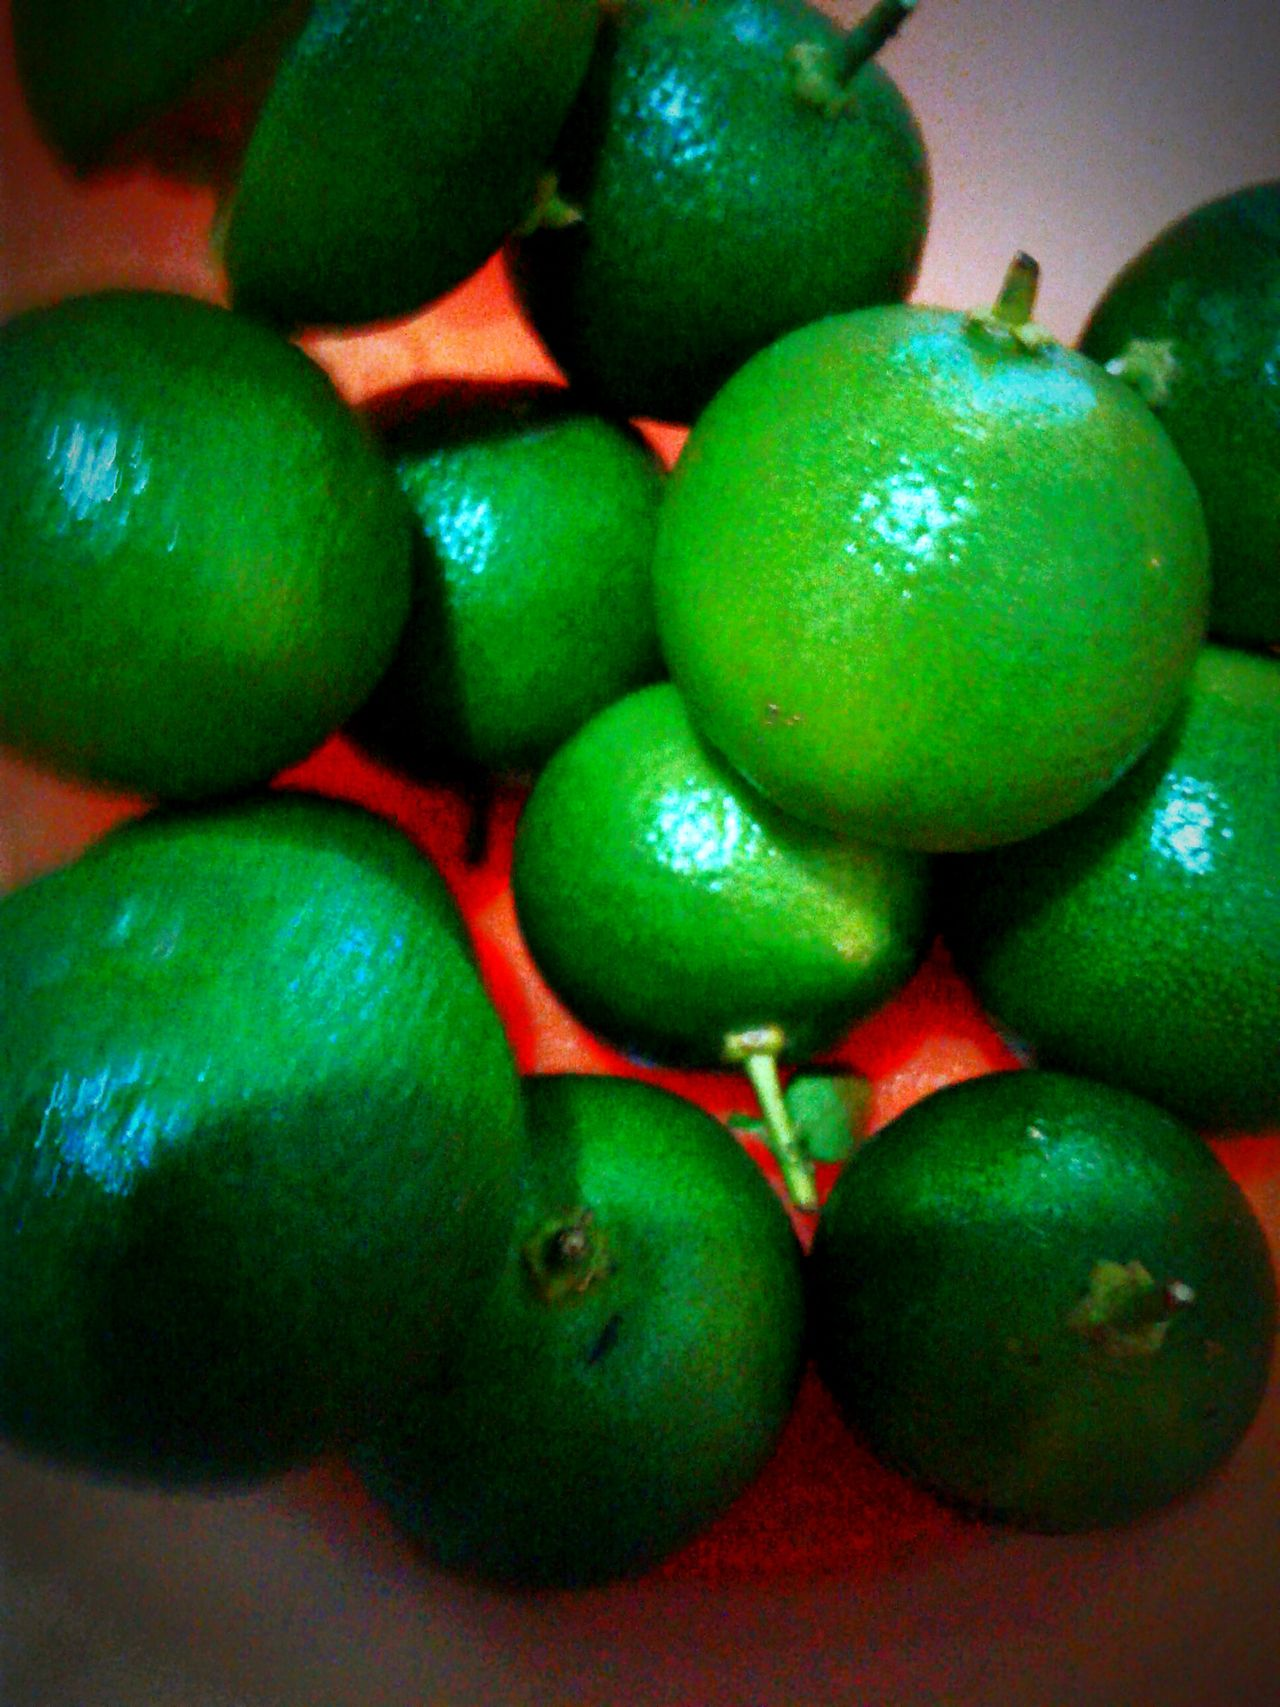 Fruit Freshness Day Nature Indonesia Culture